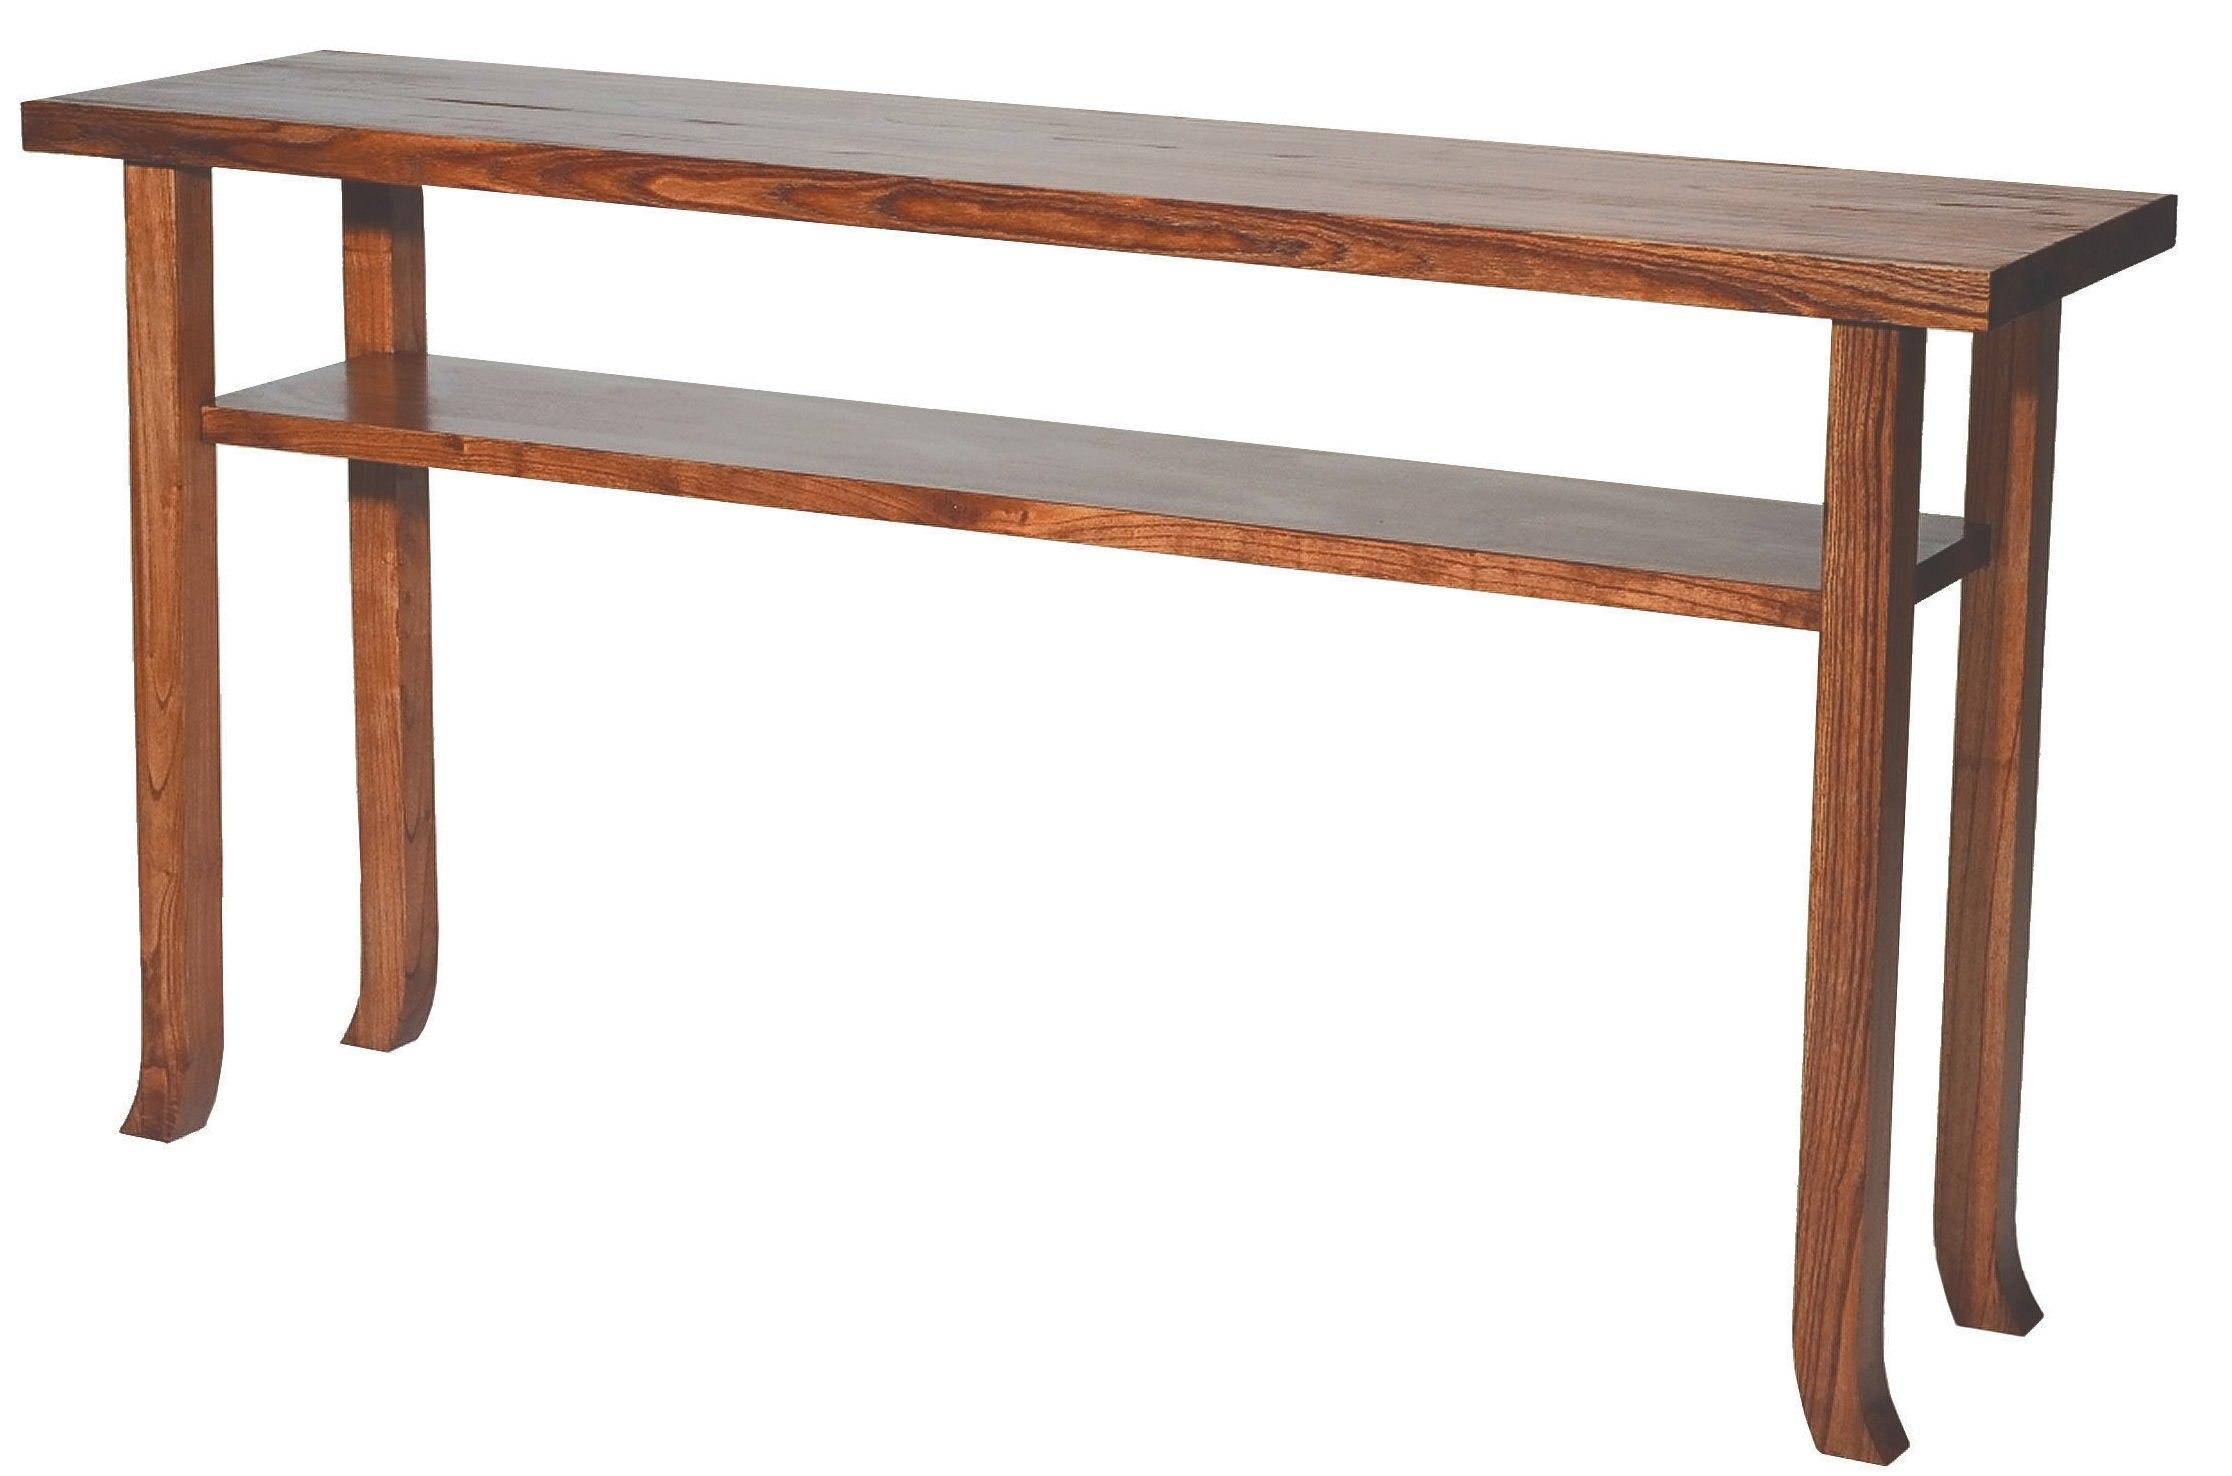 TLS by Design 15C-1012-D1 Sonoma Heights Console Table - Mahogany